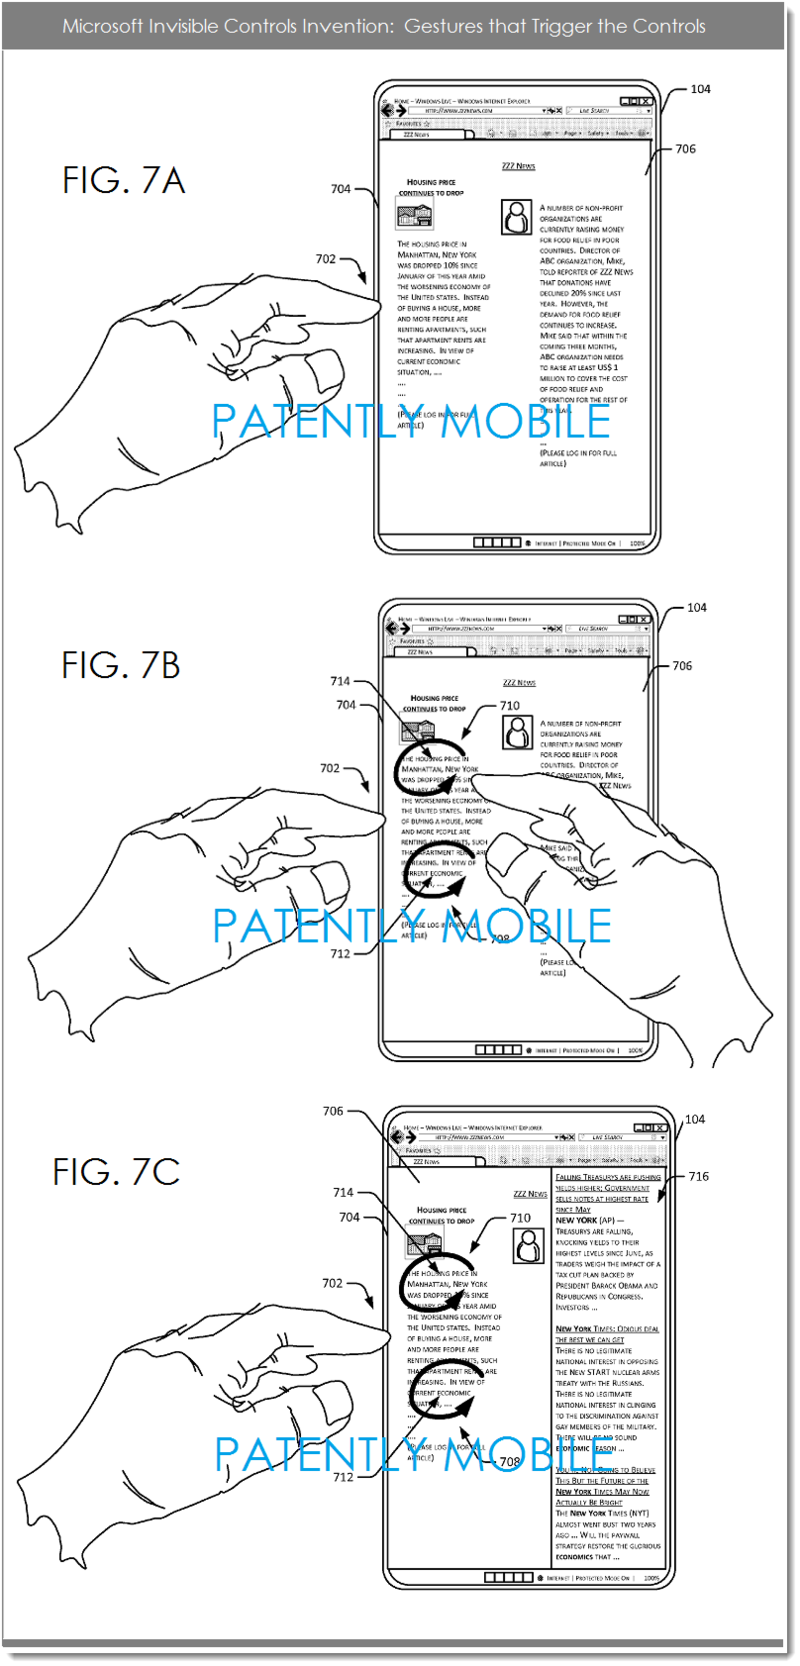 4AF - MSFT PATENT FIGS 7A,B AND C - GESTURES INVOKING INVISIBLE CONTROLS